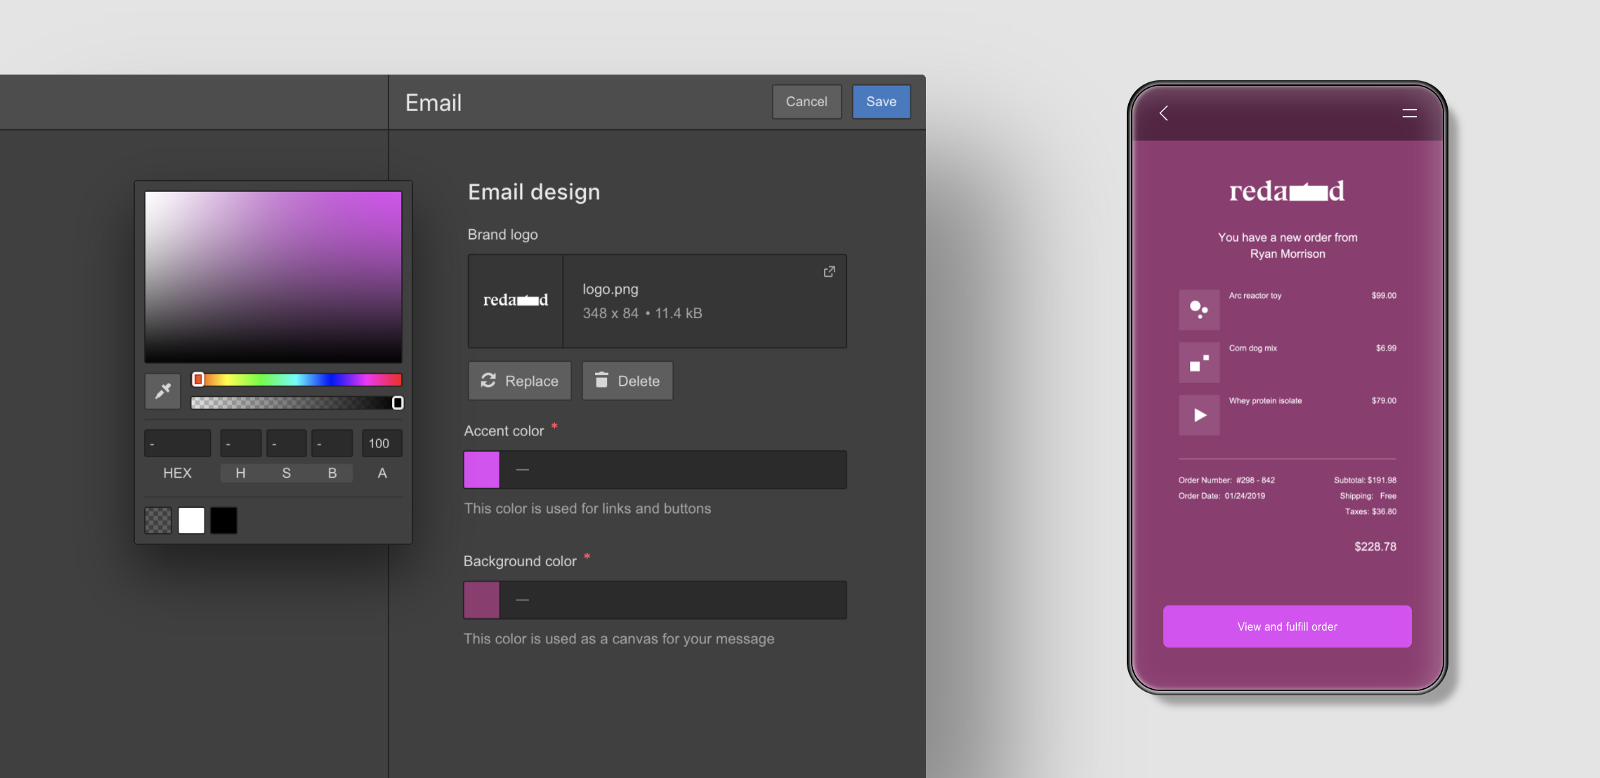 Customize your transactional emails with Webflow